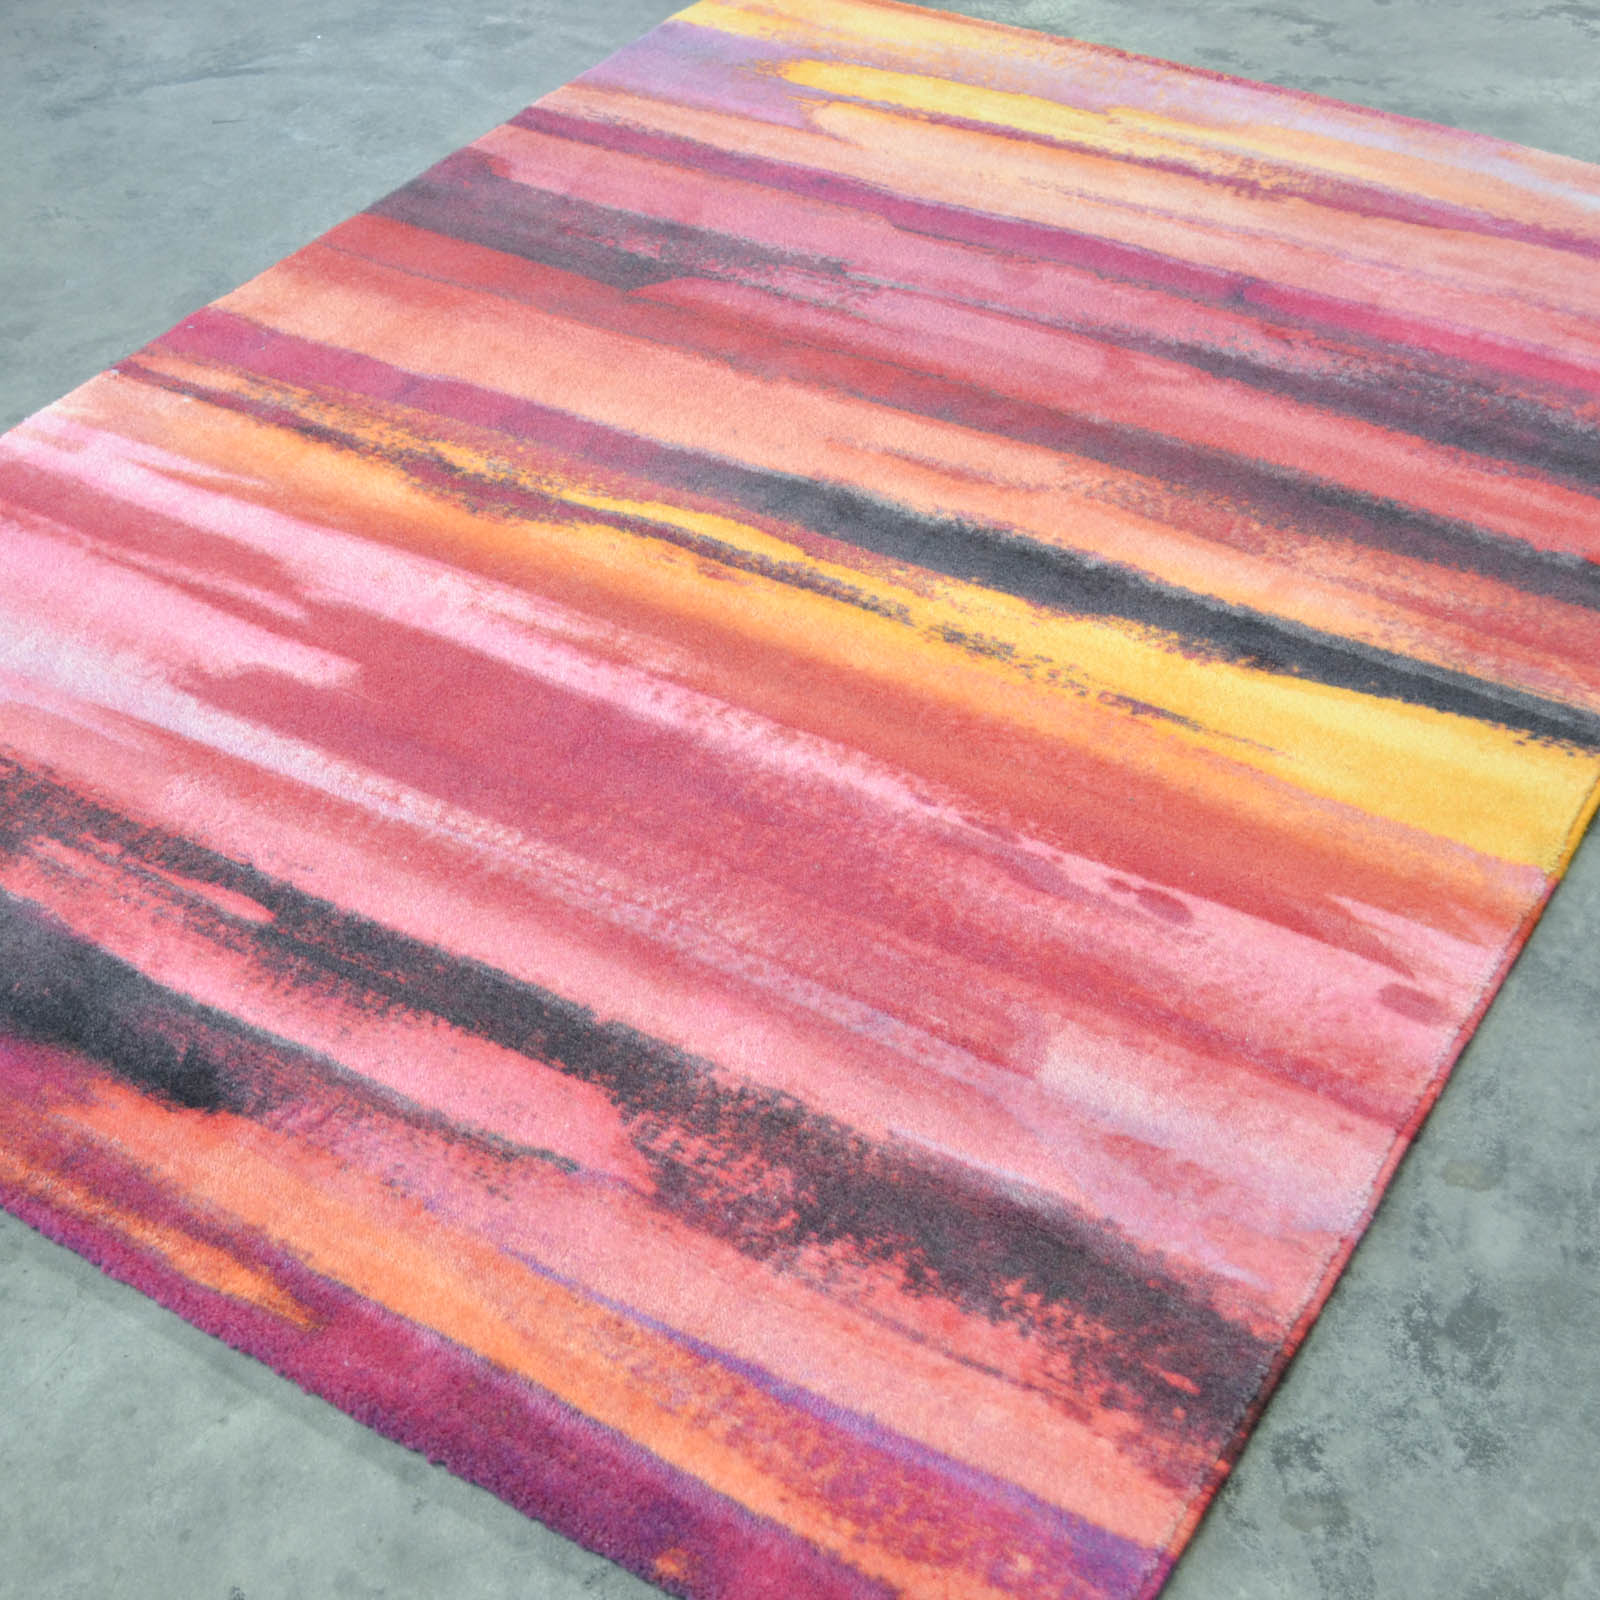 Holograph Jazz Rugs 16600 by Brink and Campman